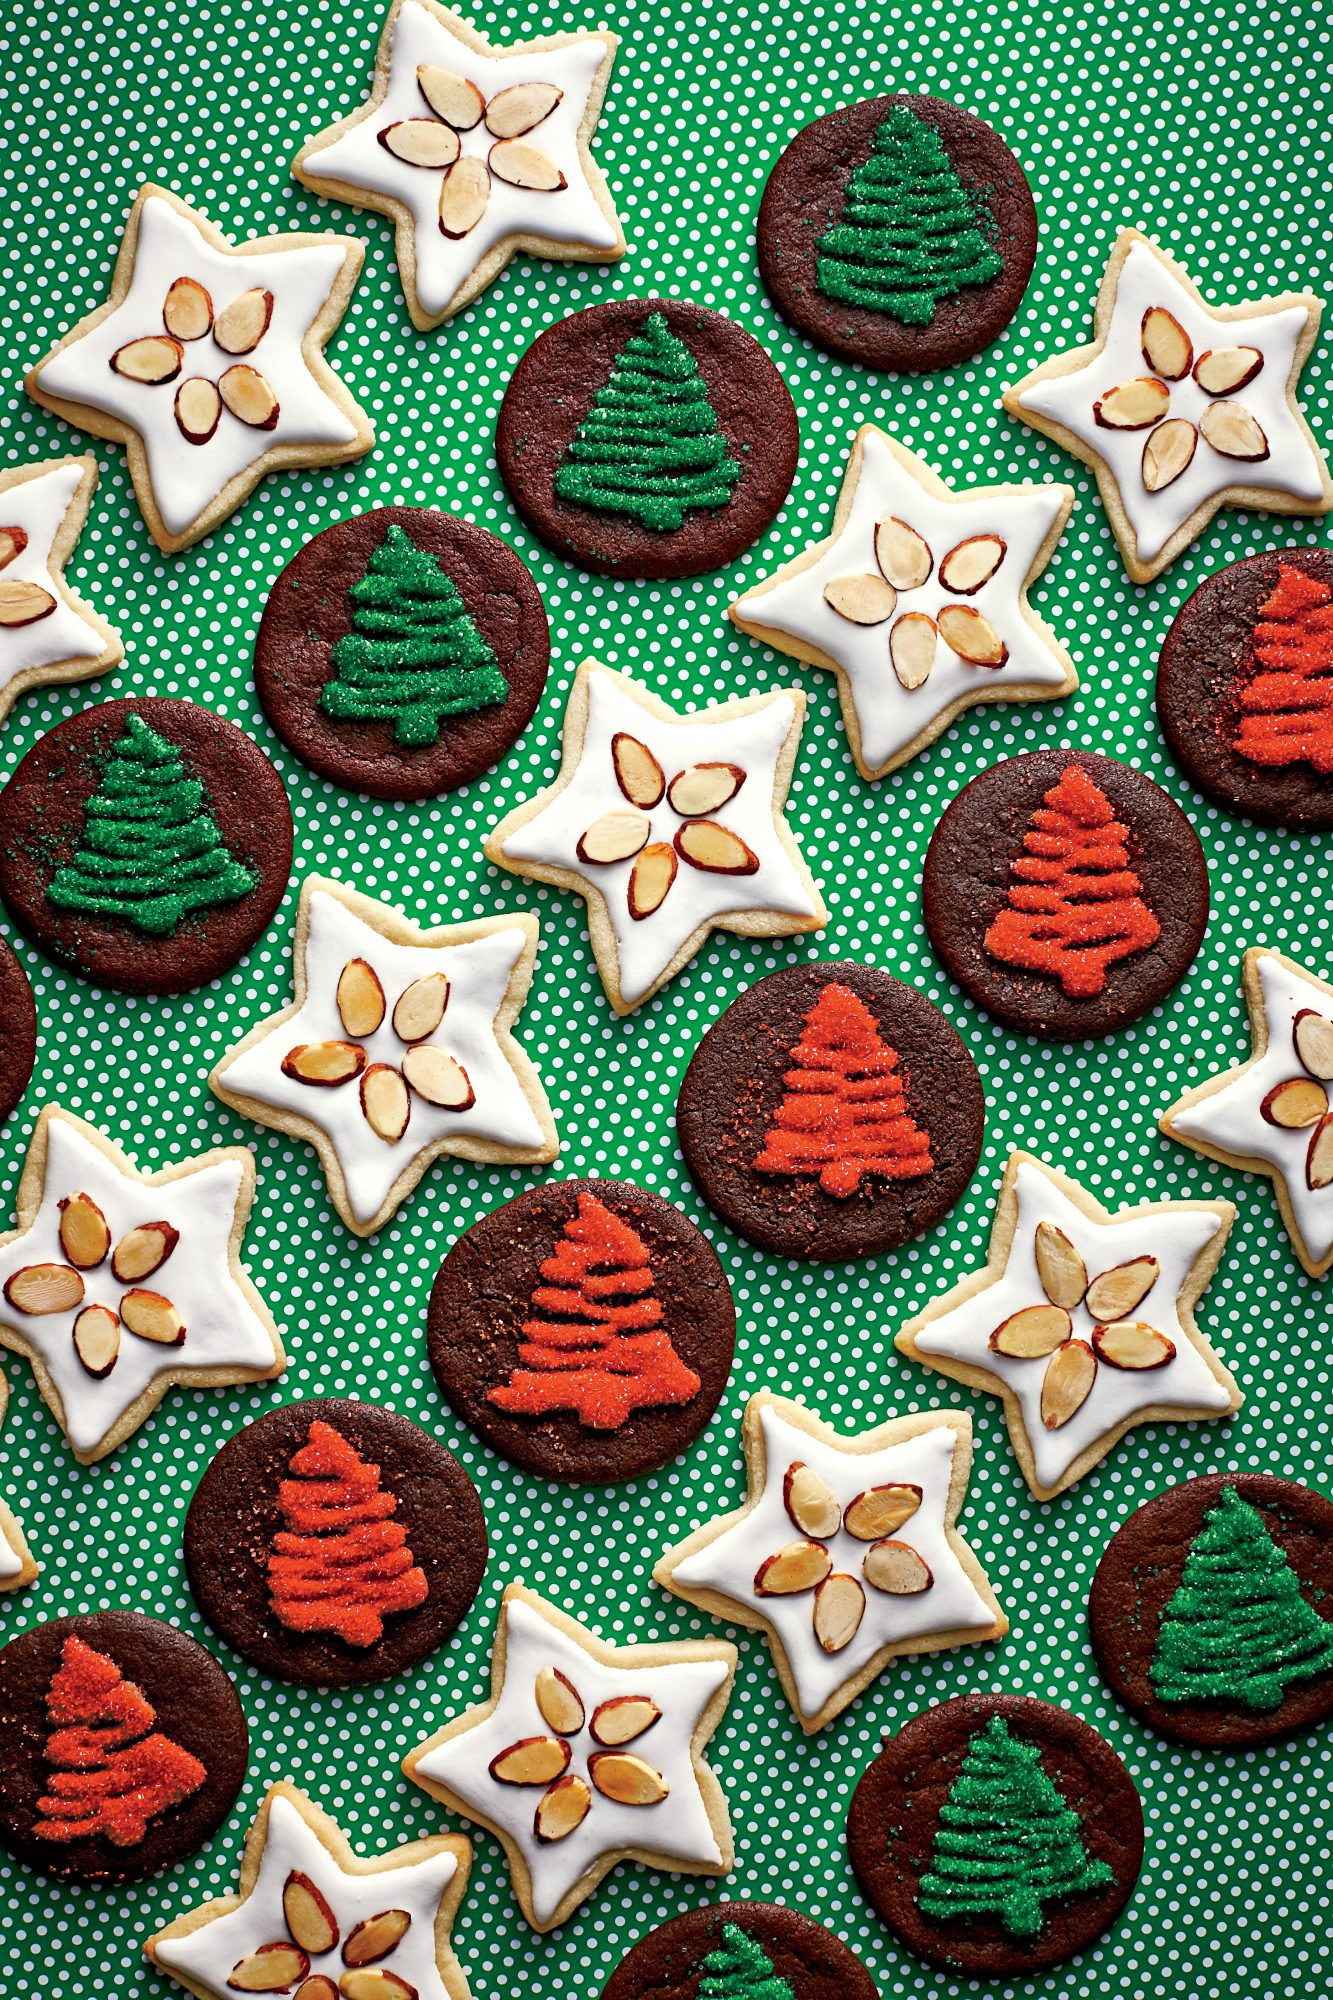 Chocolate Cutout Cookies Southern Living